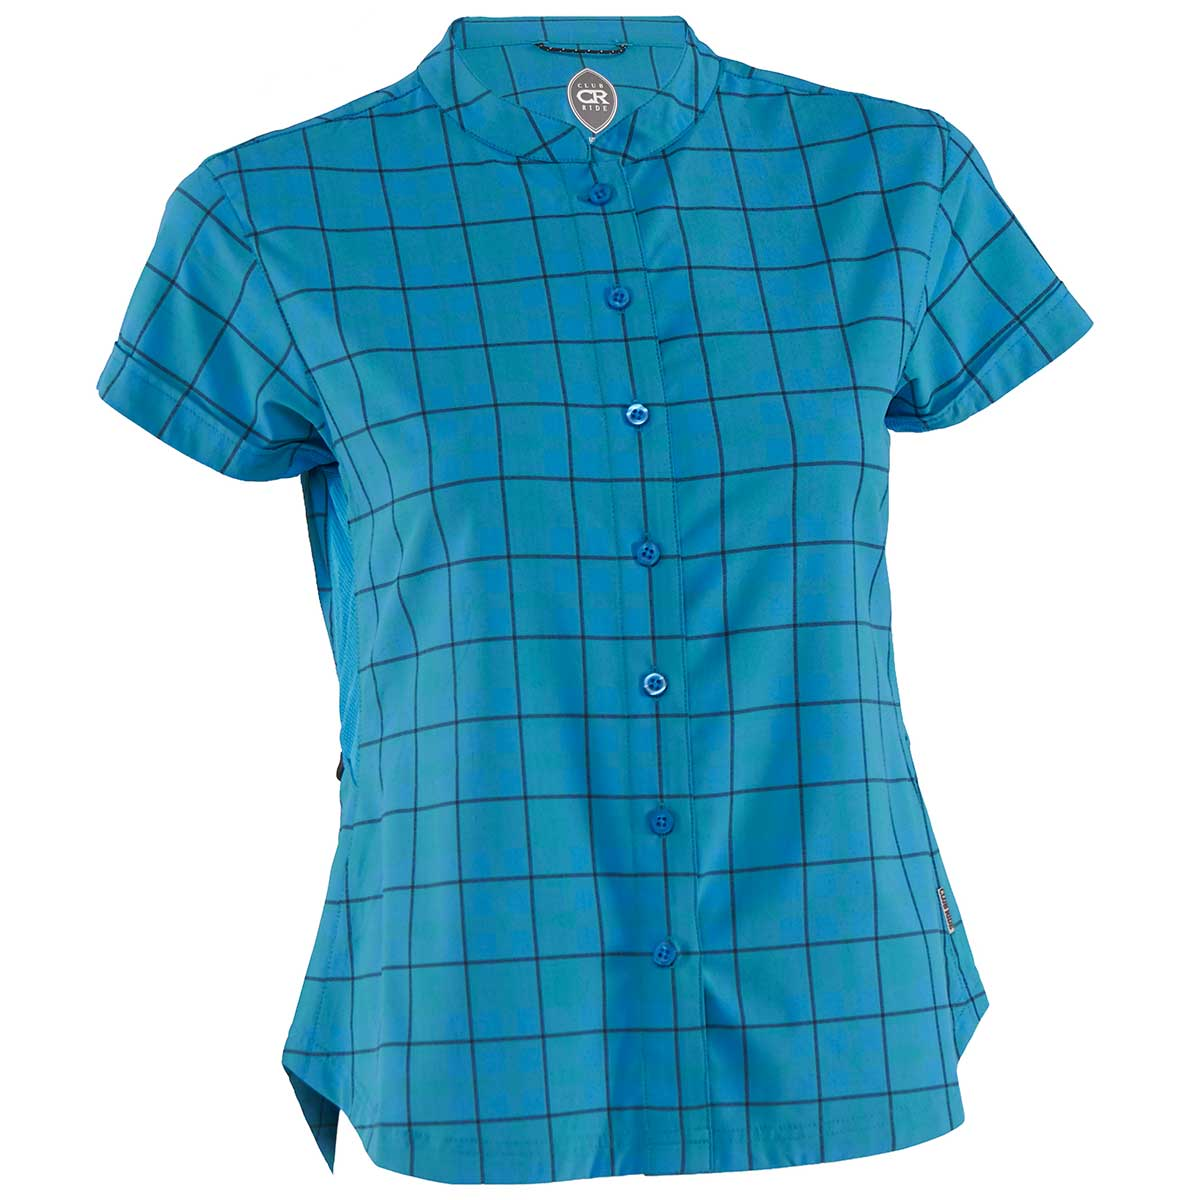 Club Ride women's Belle Vista Jersey in Caribbean Blue